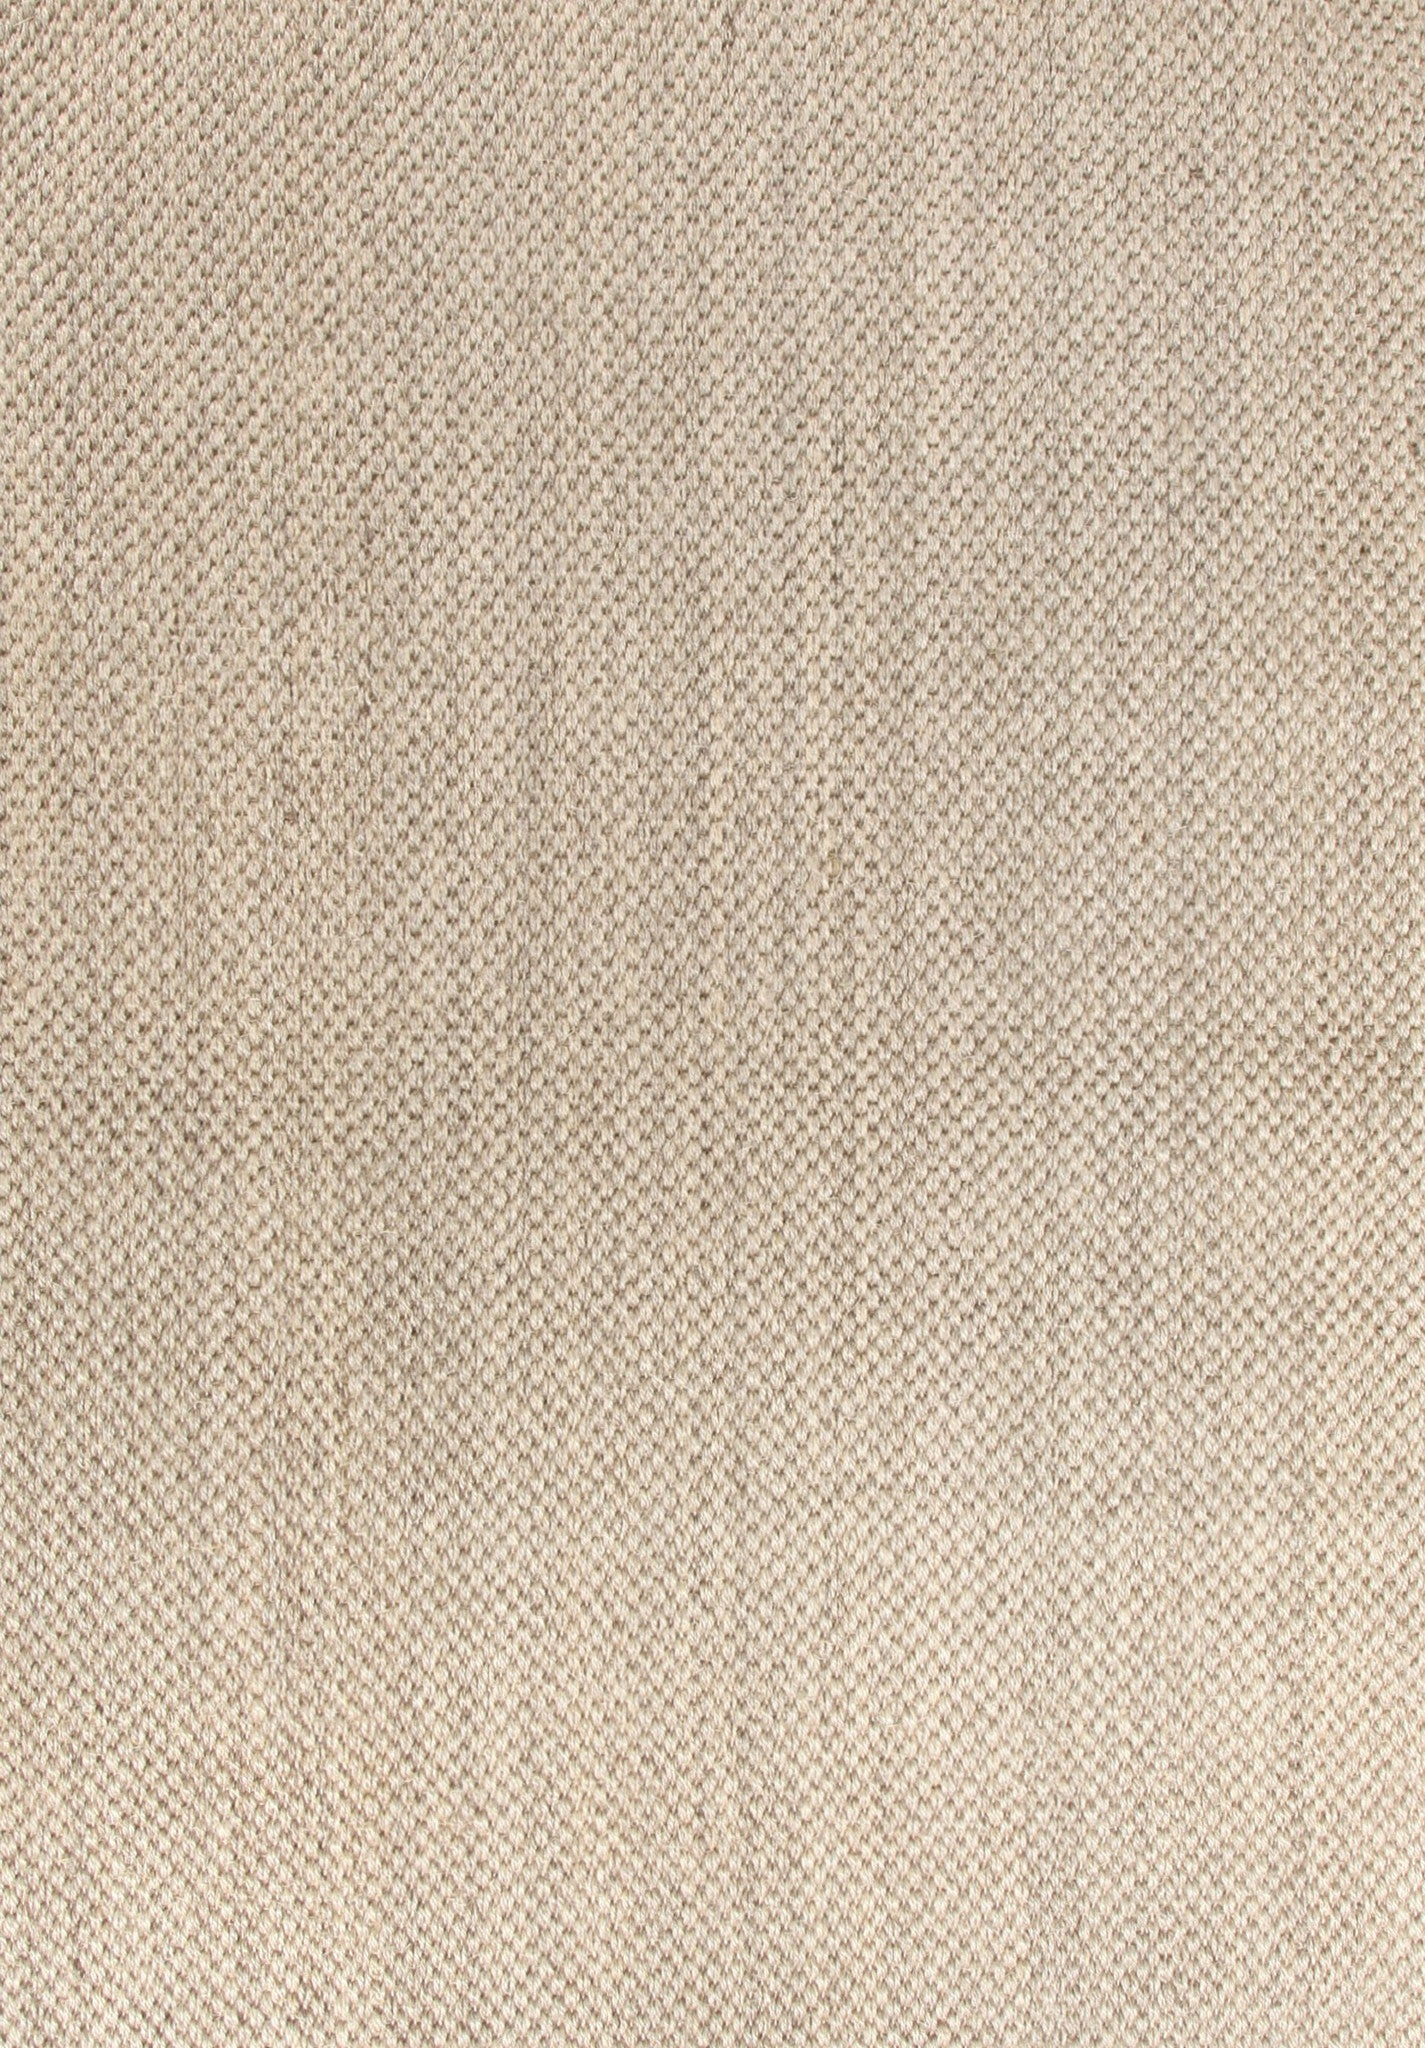 Eco Sisal Rug Tiger Eye - Marble